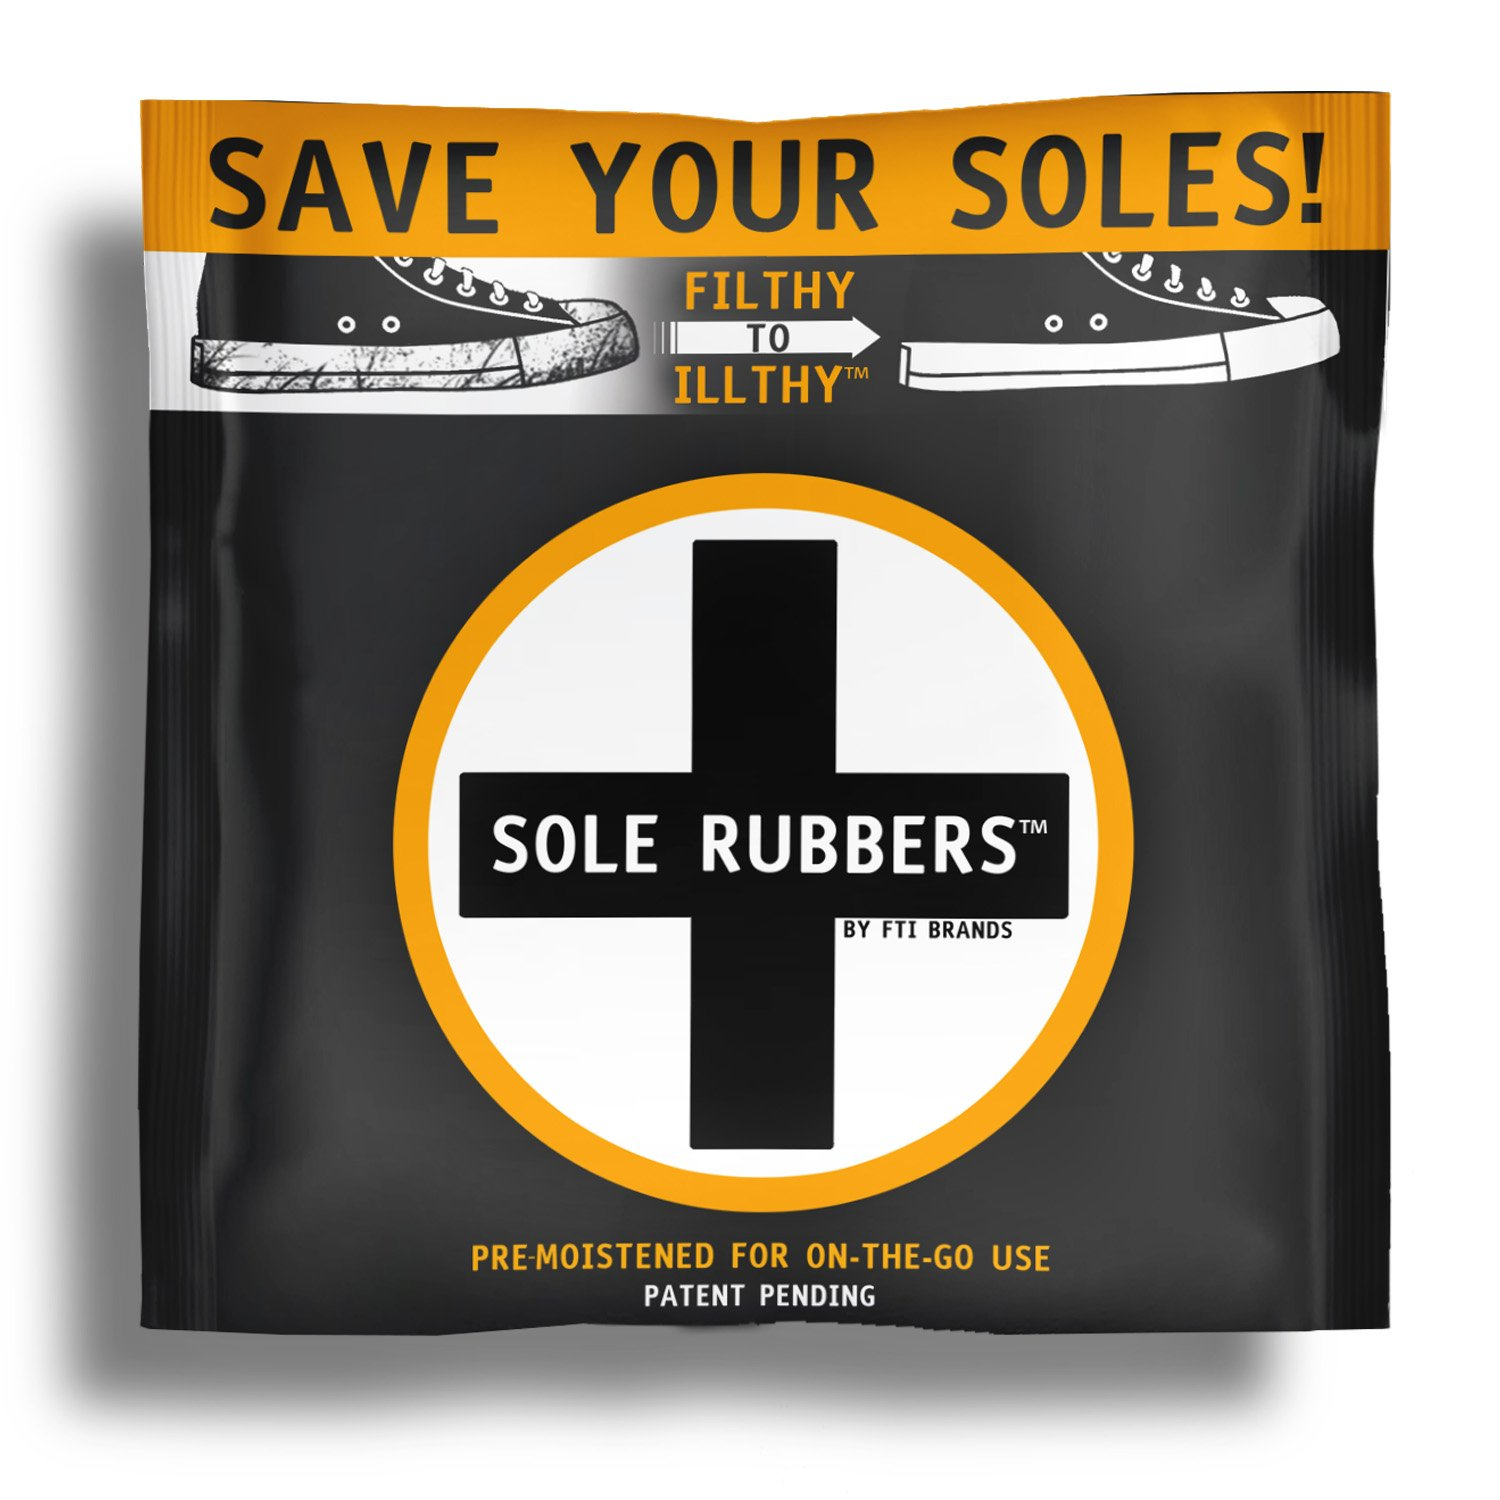 Sole Rubbers Instant Sole and Sneaker Cleaner Pre-Moistened Sponge (3-Pack) FTI Brands 1001